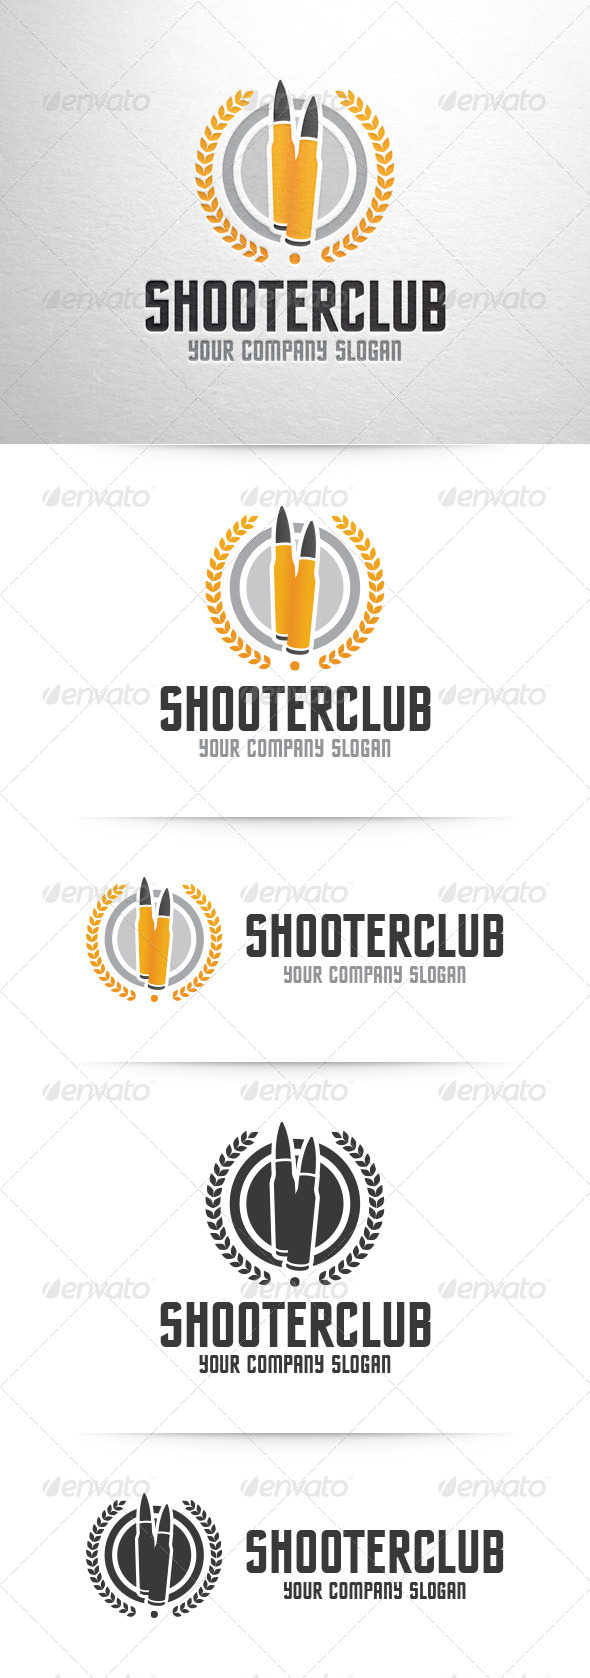 GraphicRiver Shooter Club Logo Template 7573493